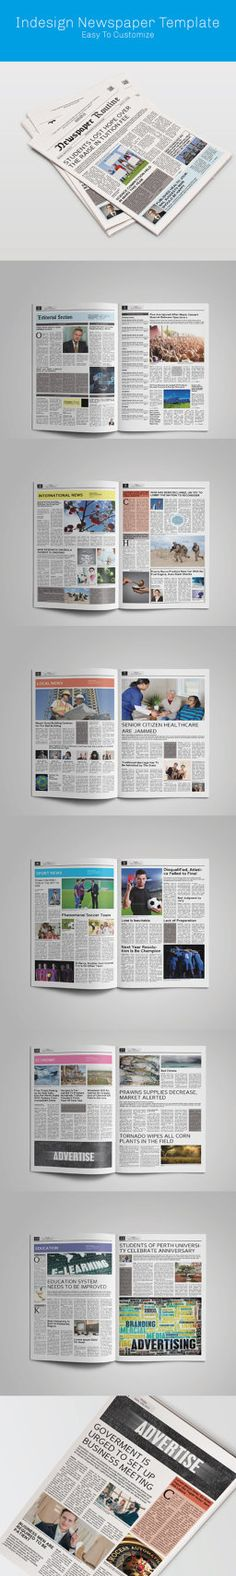 Newspaper template 12 pages indesign (a3) | Print templates ...